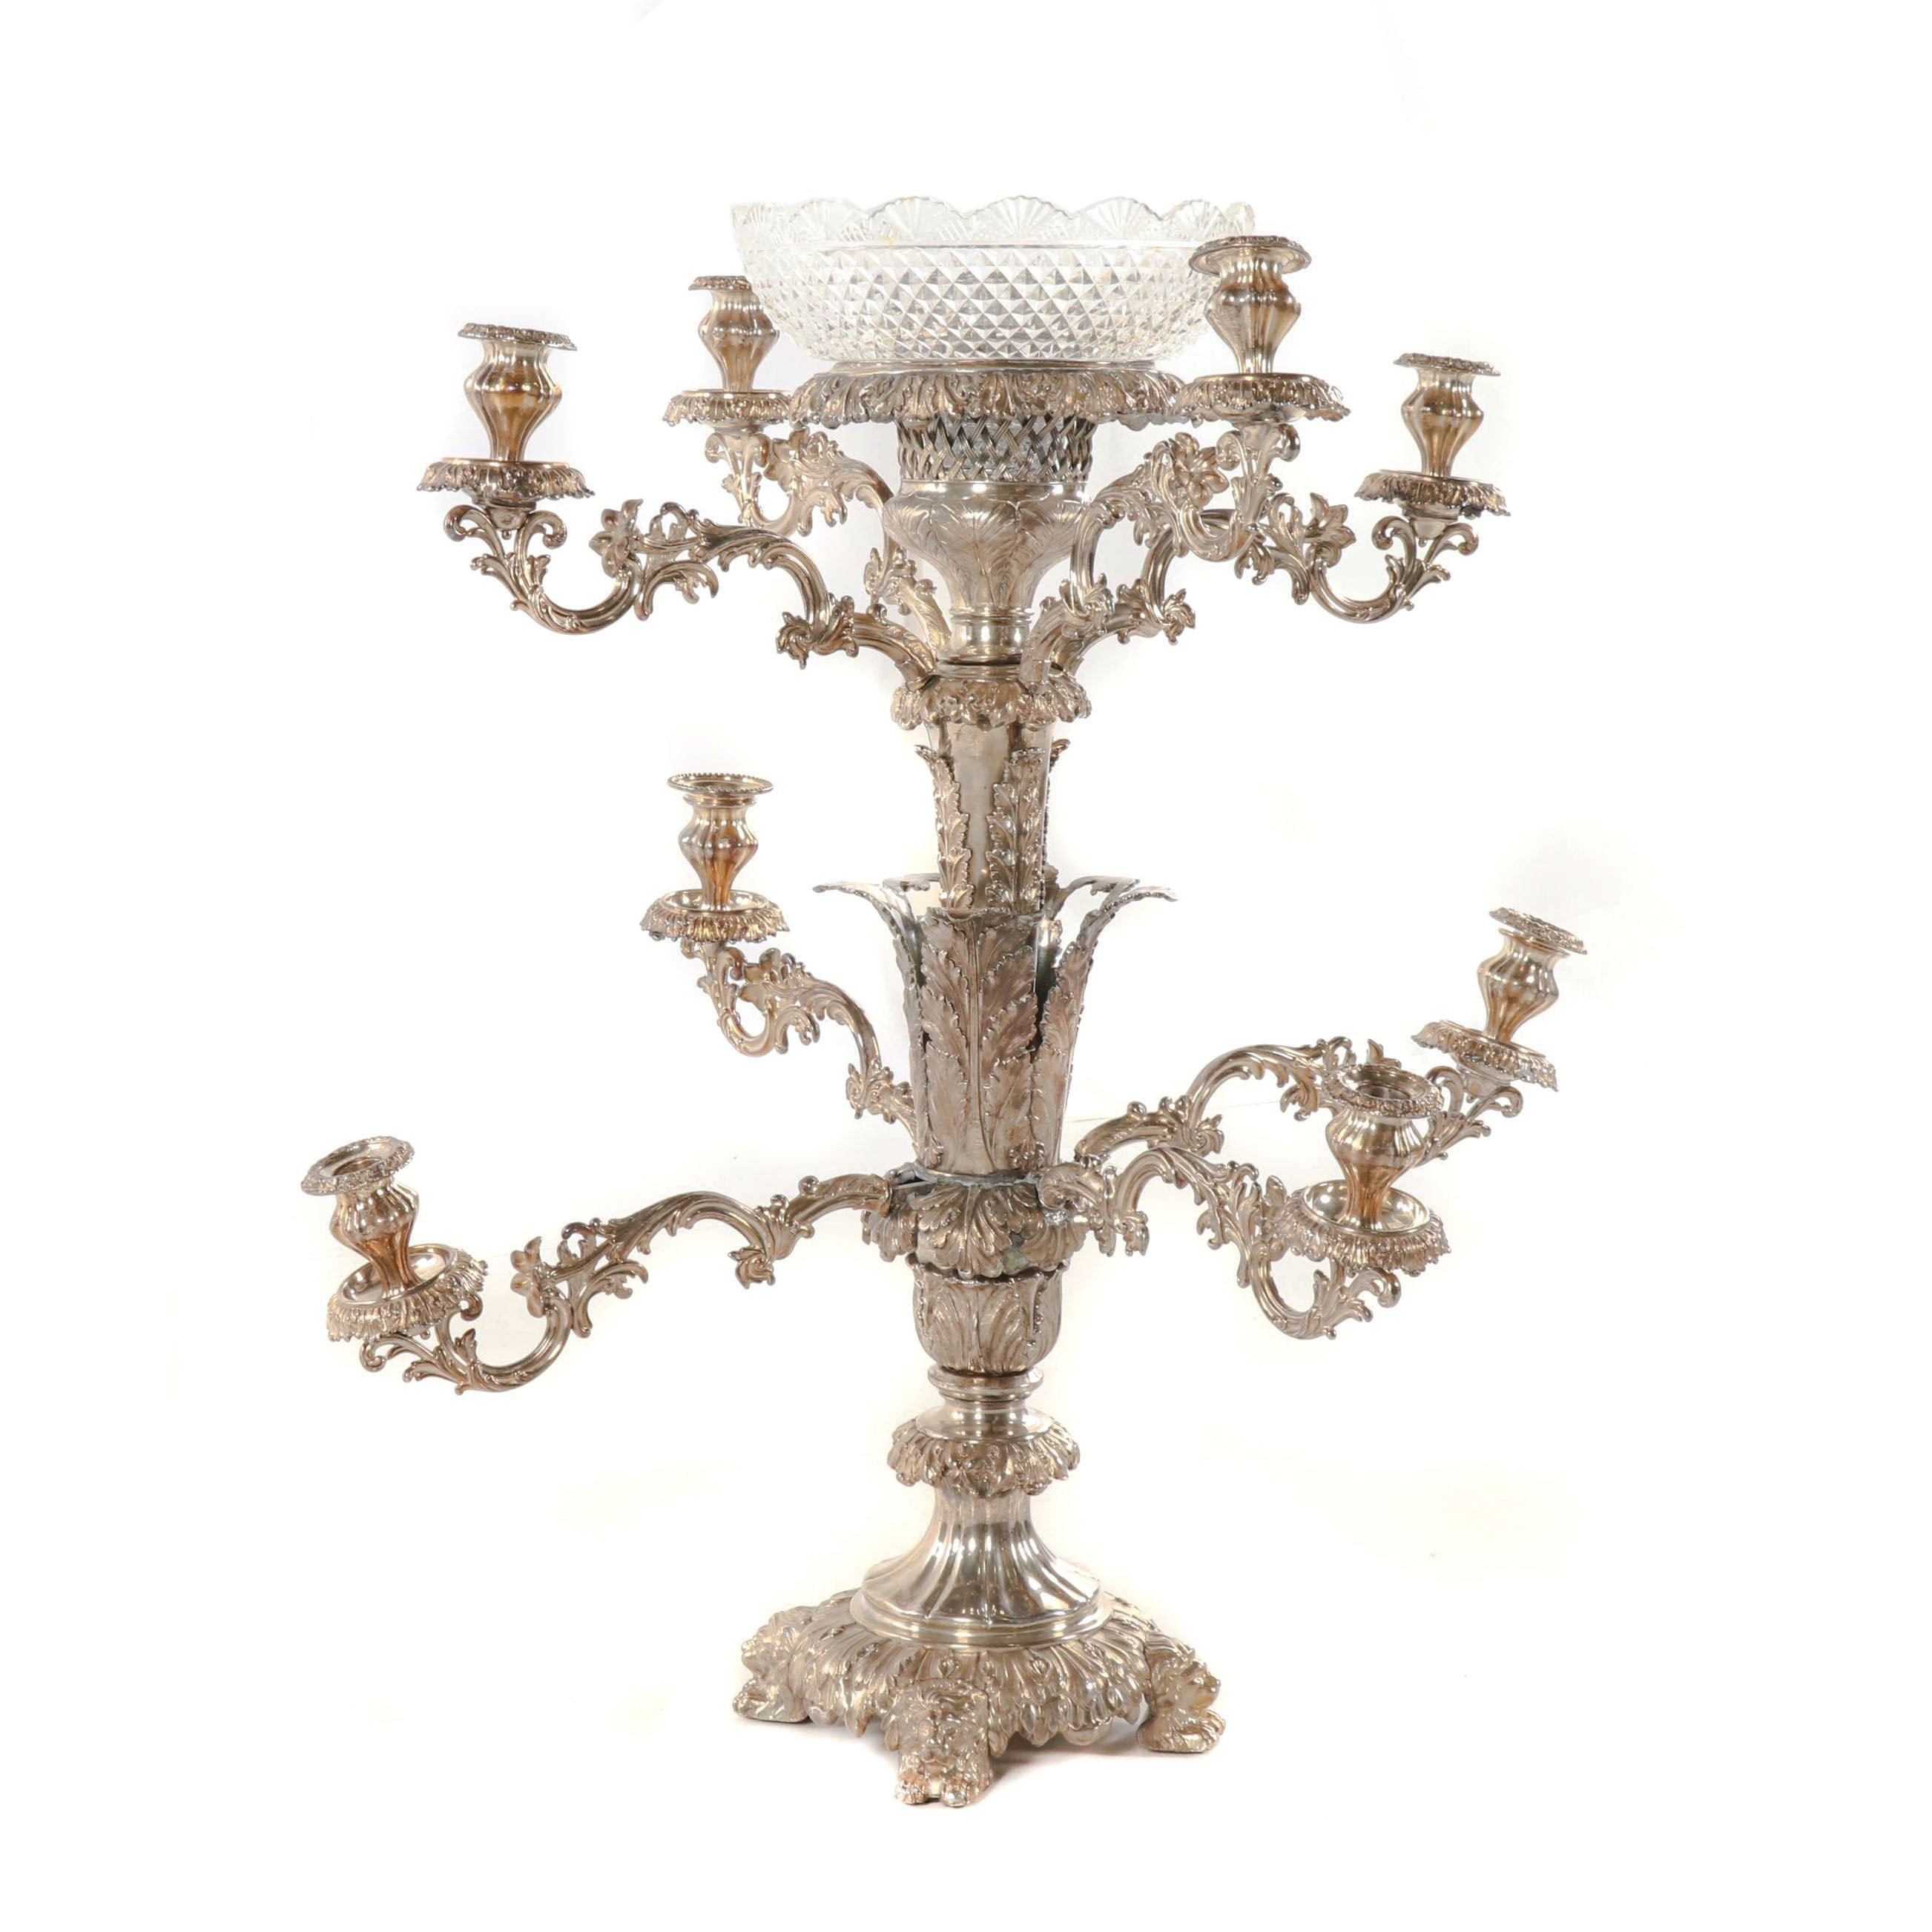 James Dixon & Son Old Sheffield Plate Candelabrum Epergne, Early 19th Century